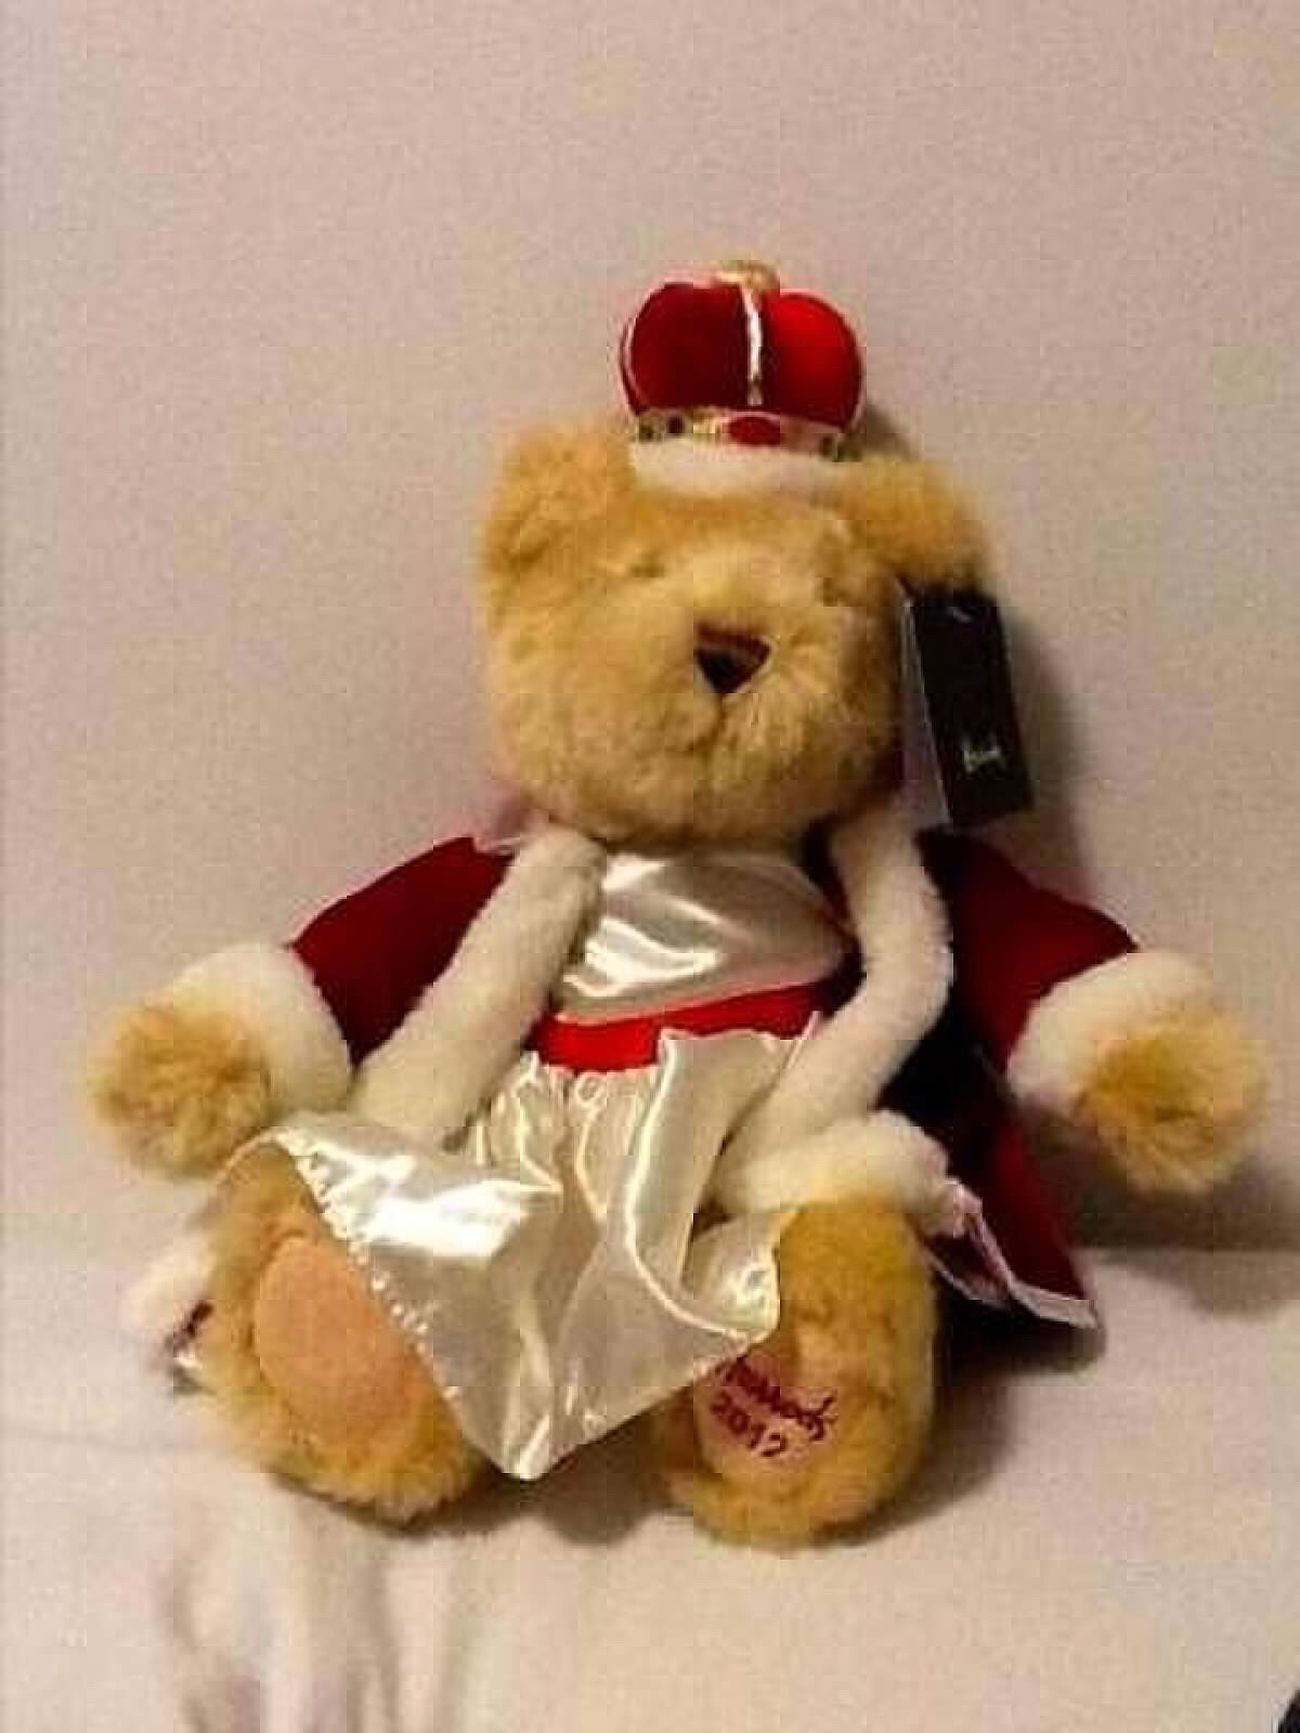 Queen of England's Jubilee bear Queen's Jubilee